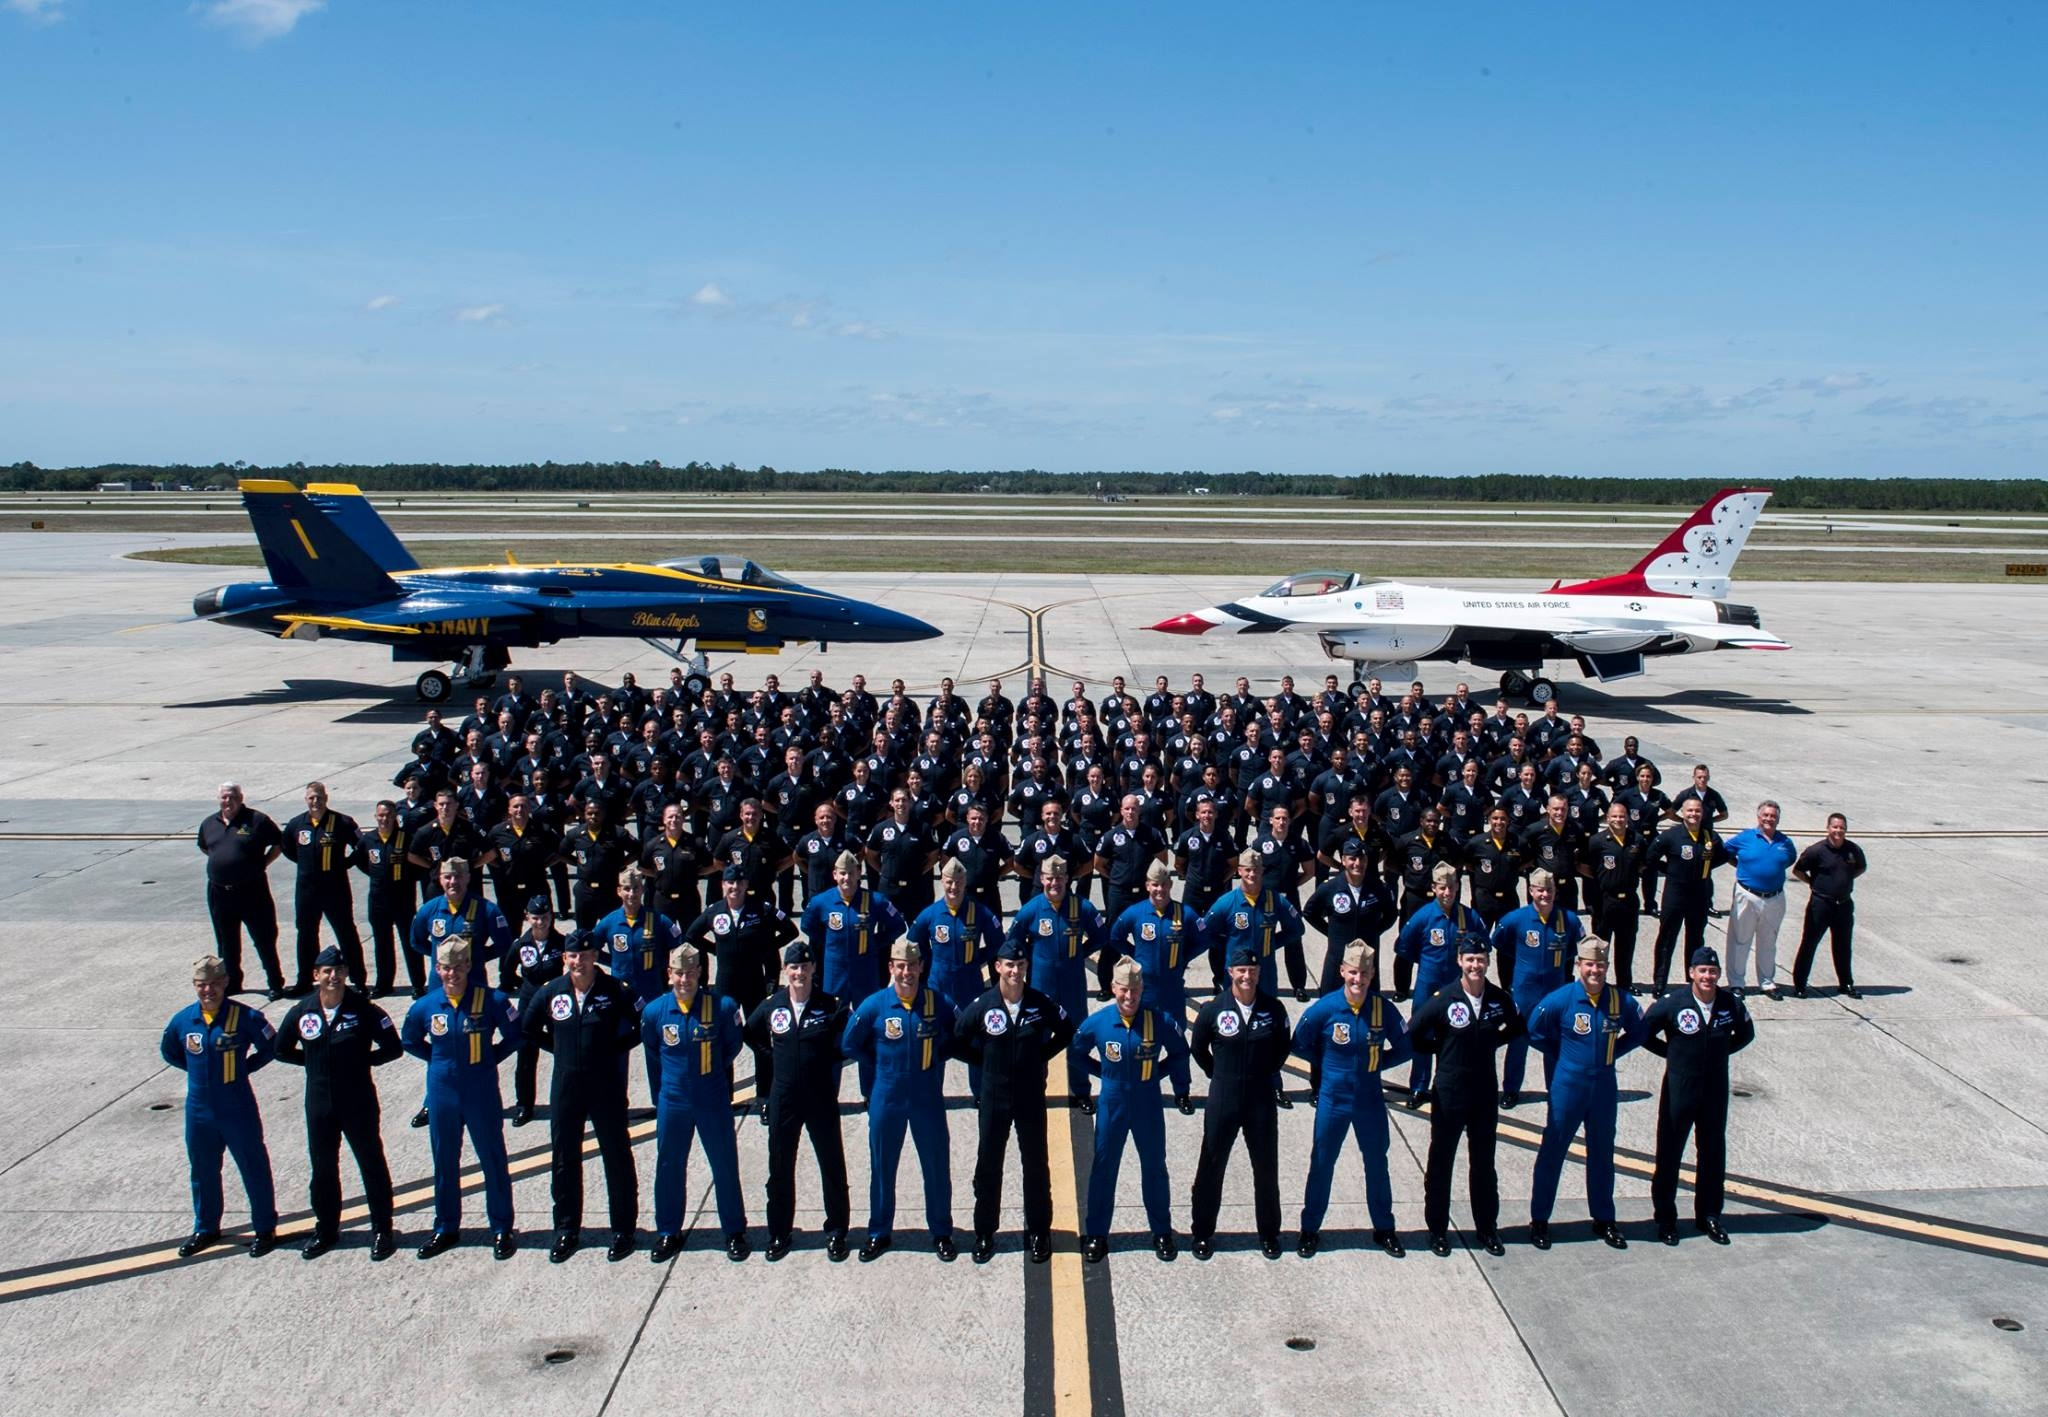 Thunderbirds and Blue Angels Squadrons at Pensacola. Photo USAF